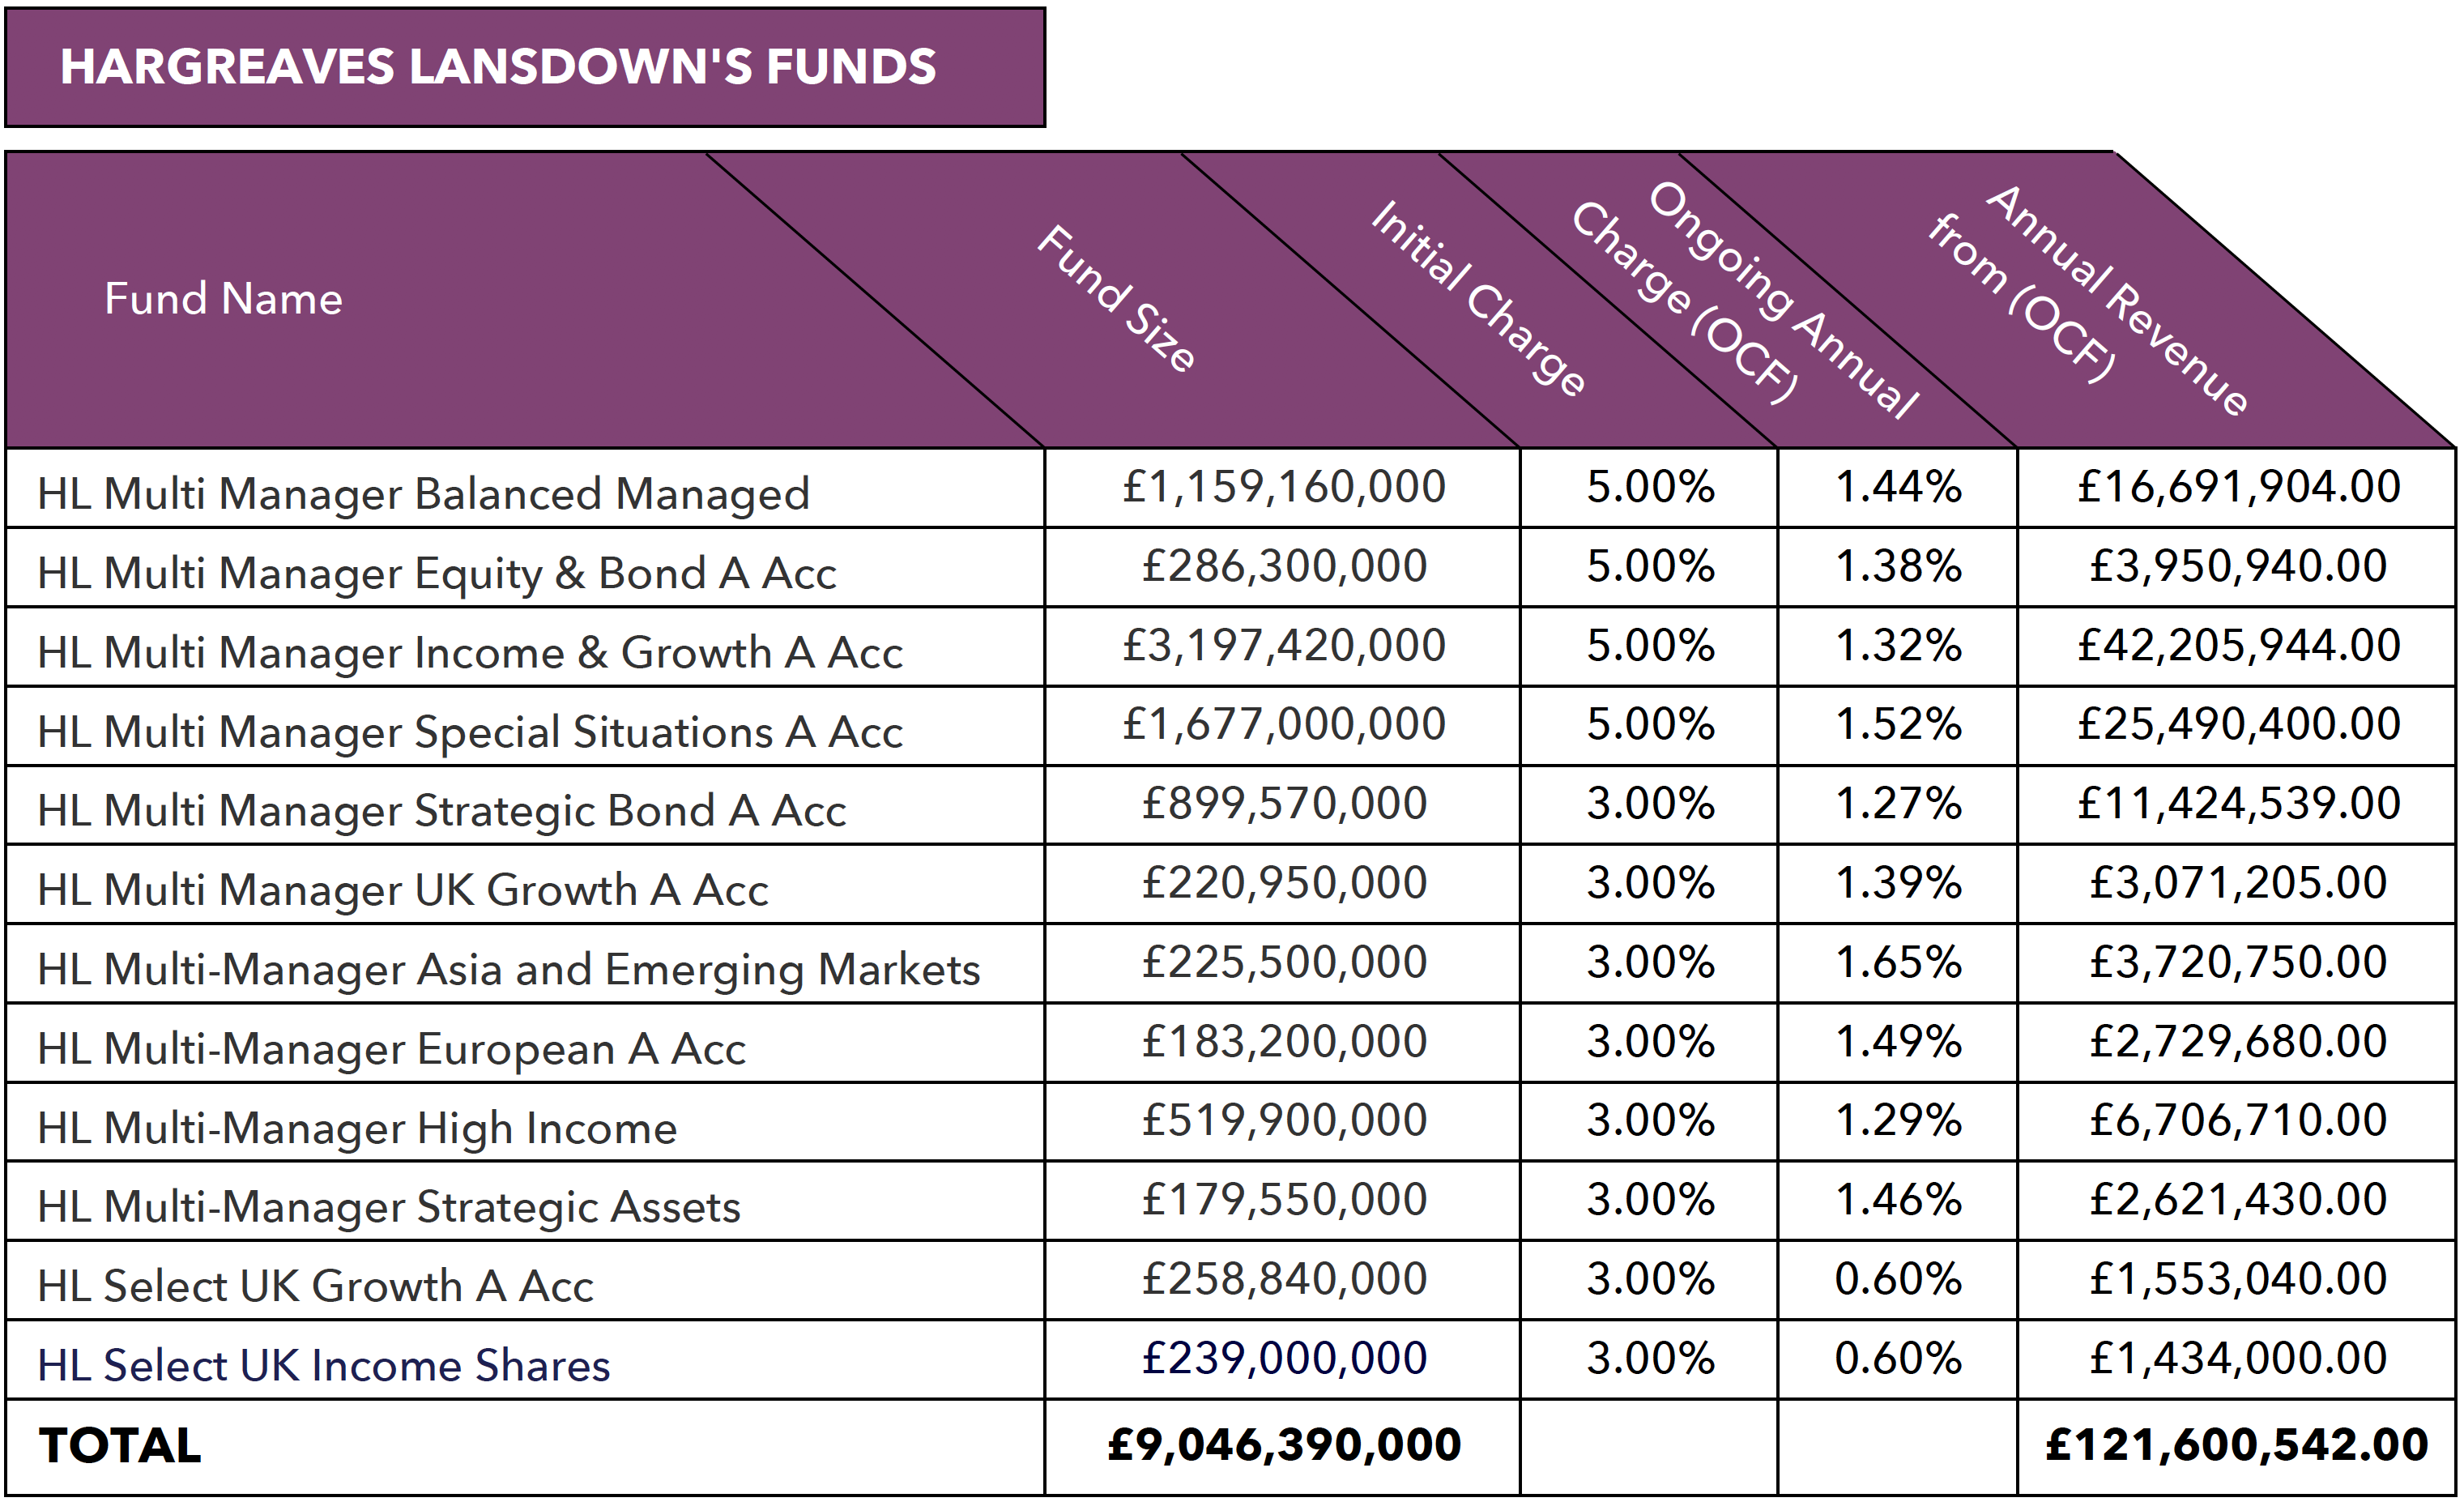 Hargreaves Lansdown fund size and income.png